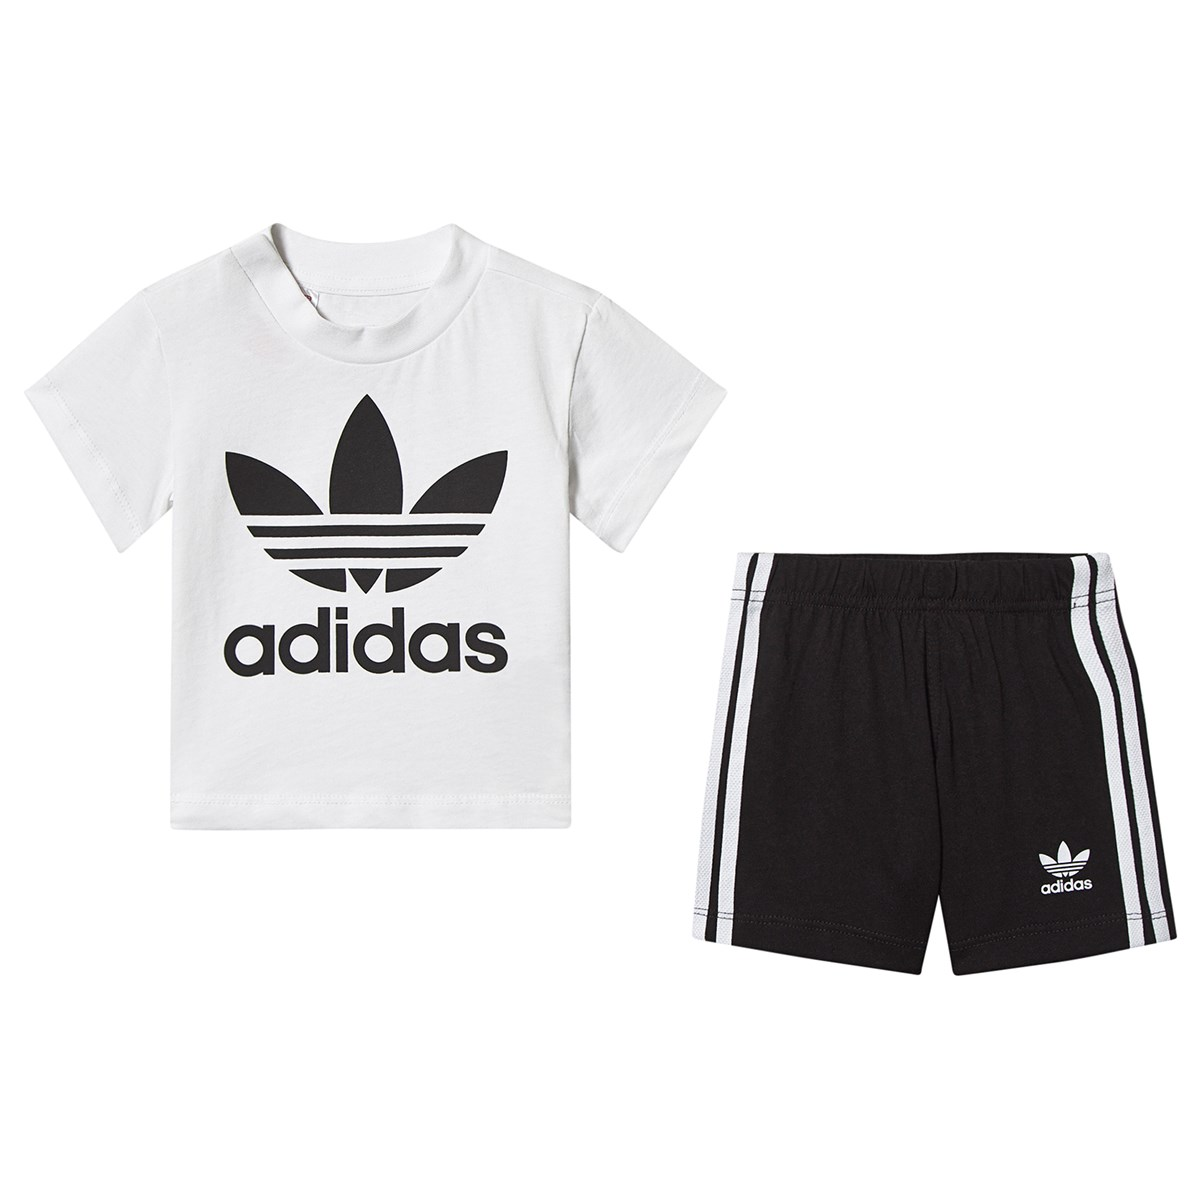 adidas Originals Short Tee Set Babies White and